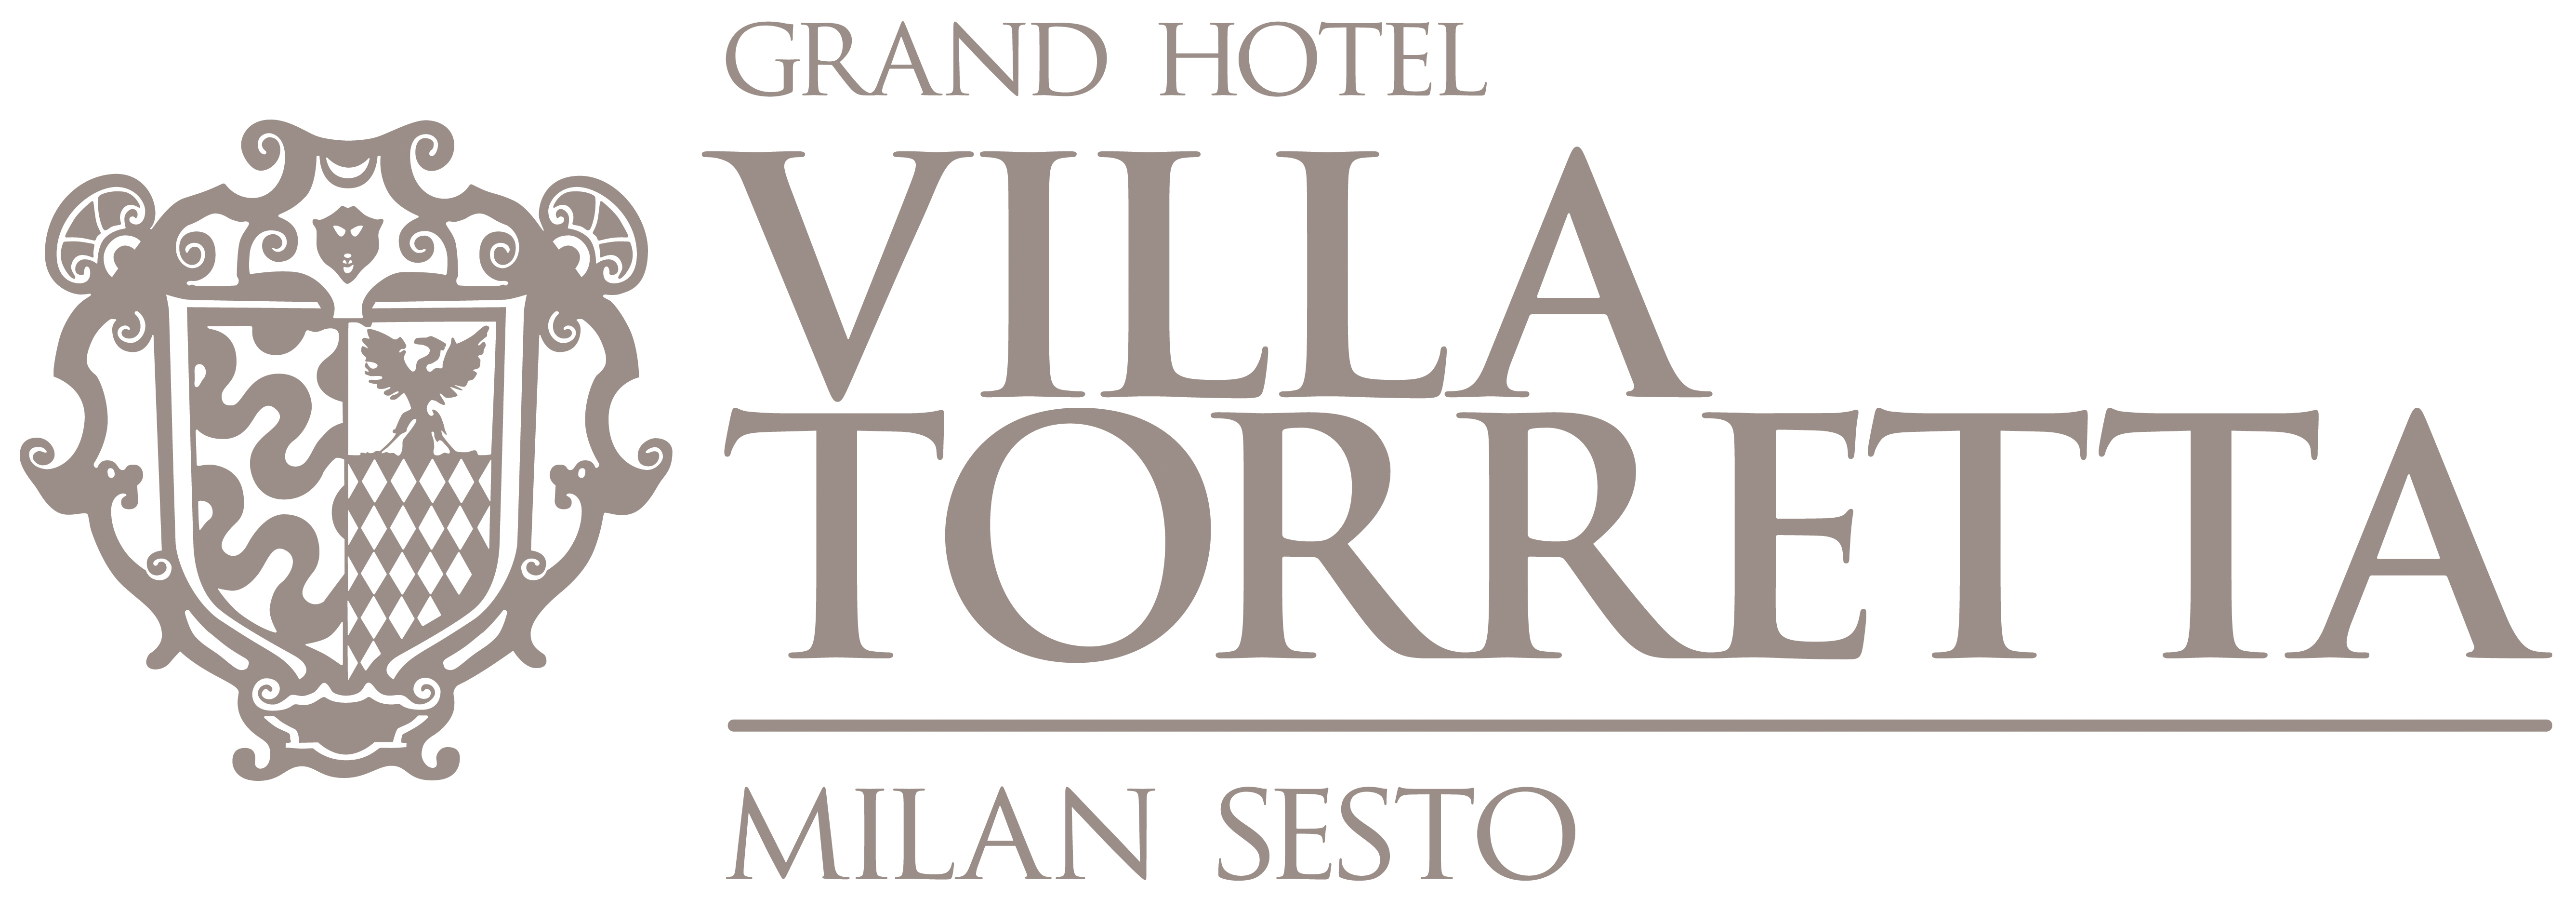 Meetings Events At Grand Hotel Villa Torretta Milan Sesto Curio Collection By Hilton Sesto San Giovanni Mi Italy Conference Hotel Group